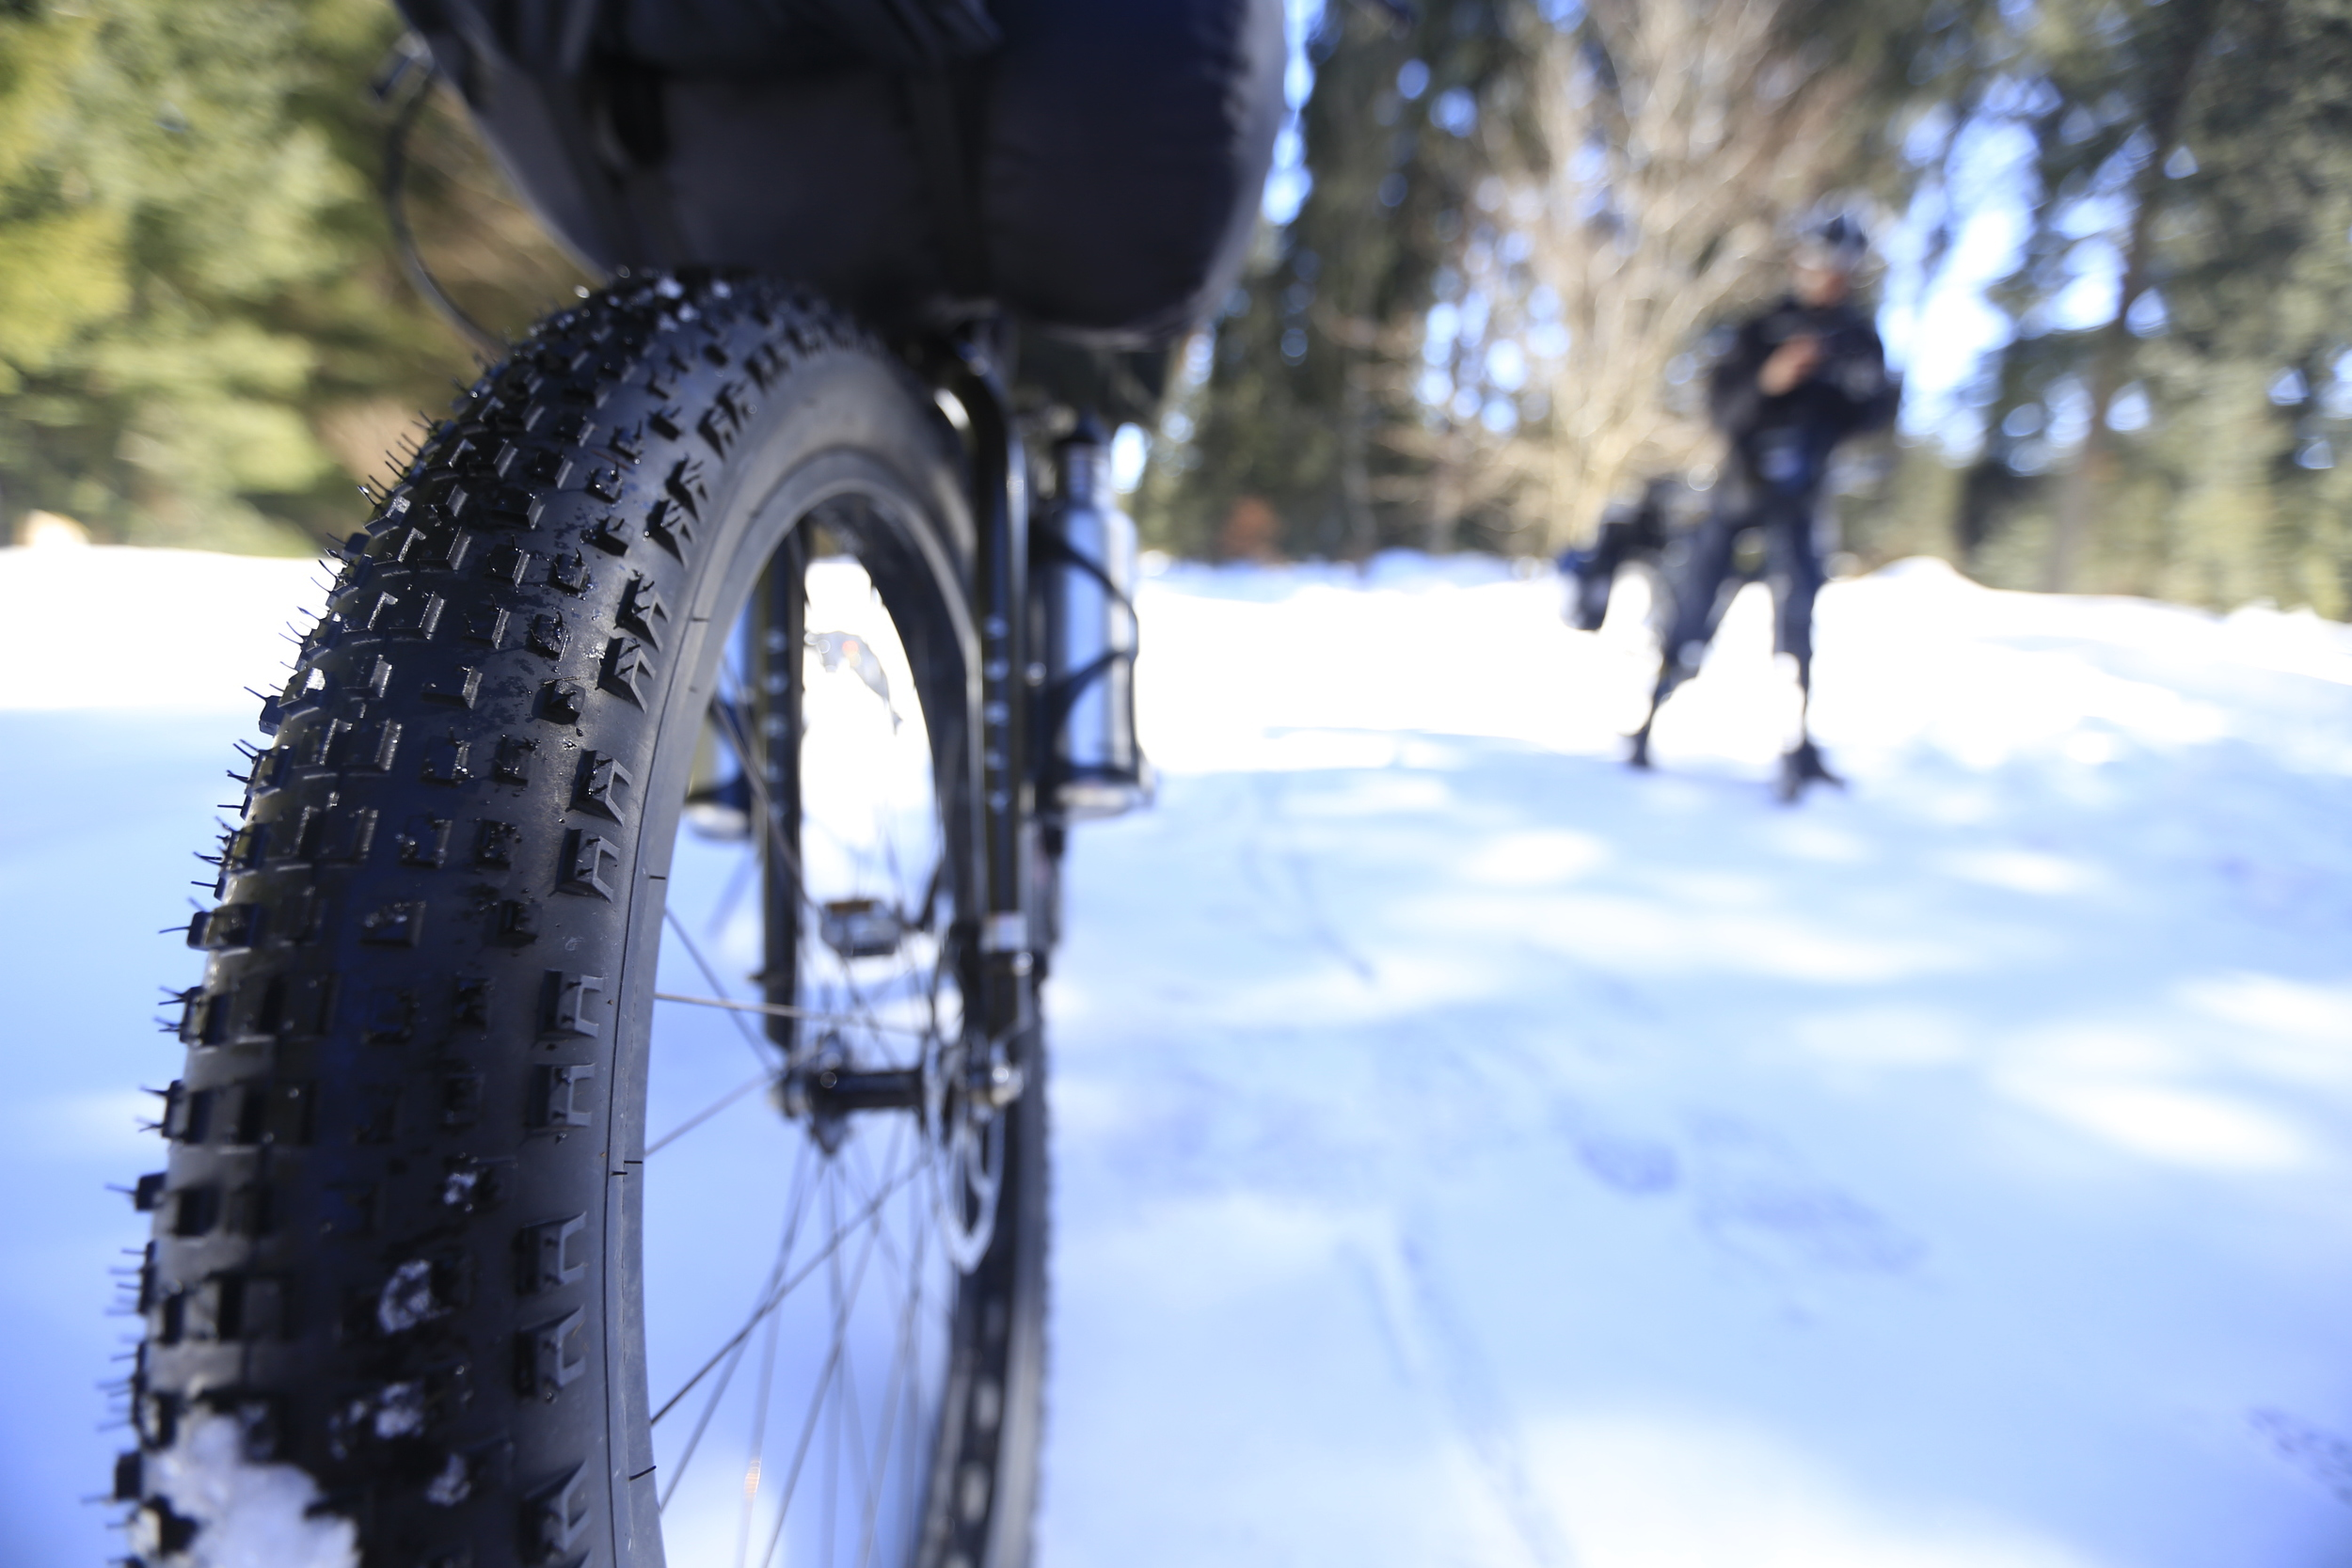 knards, surly, surly ecr, ecr, fat biking, cycle touring, bicycle touring, touring, adventure, travel, cycling gear, touring bike, touring bikes, bike gear, adventure cycling, ride, bikepacking, cycle routes